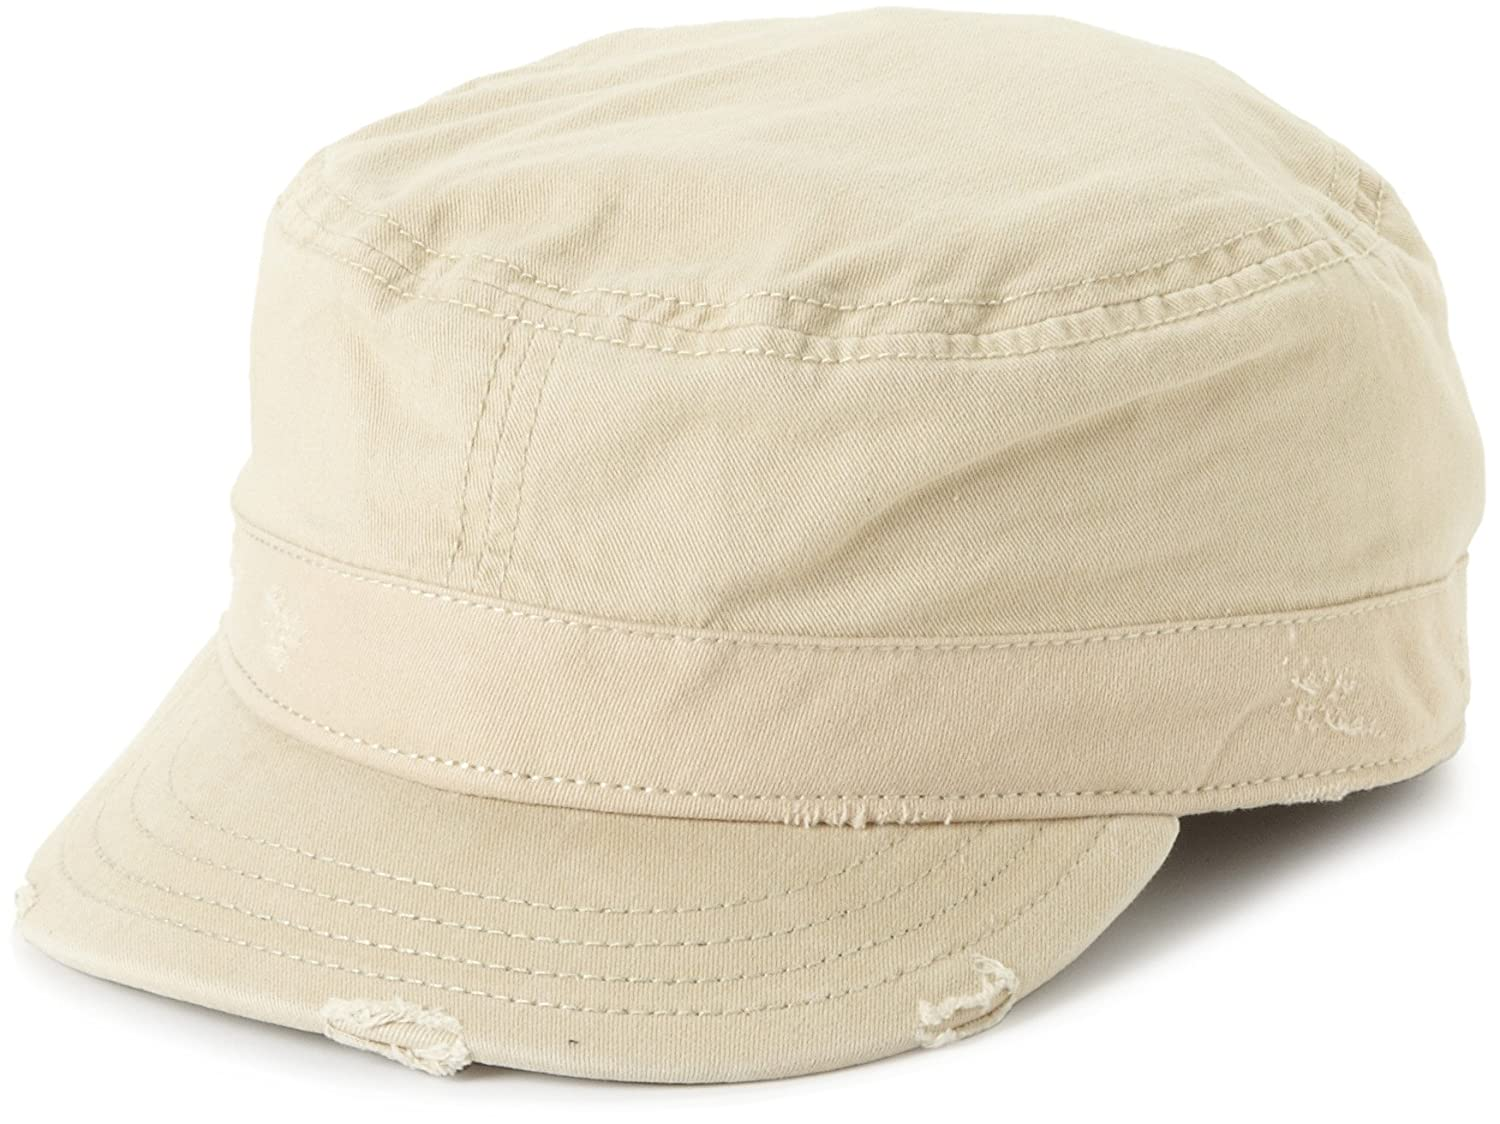 Diesel Mens Caremet- Service Train Driver Style Hat in Beige  Amazon.co.uk   Clothing 08e05c45a75